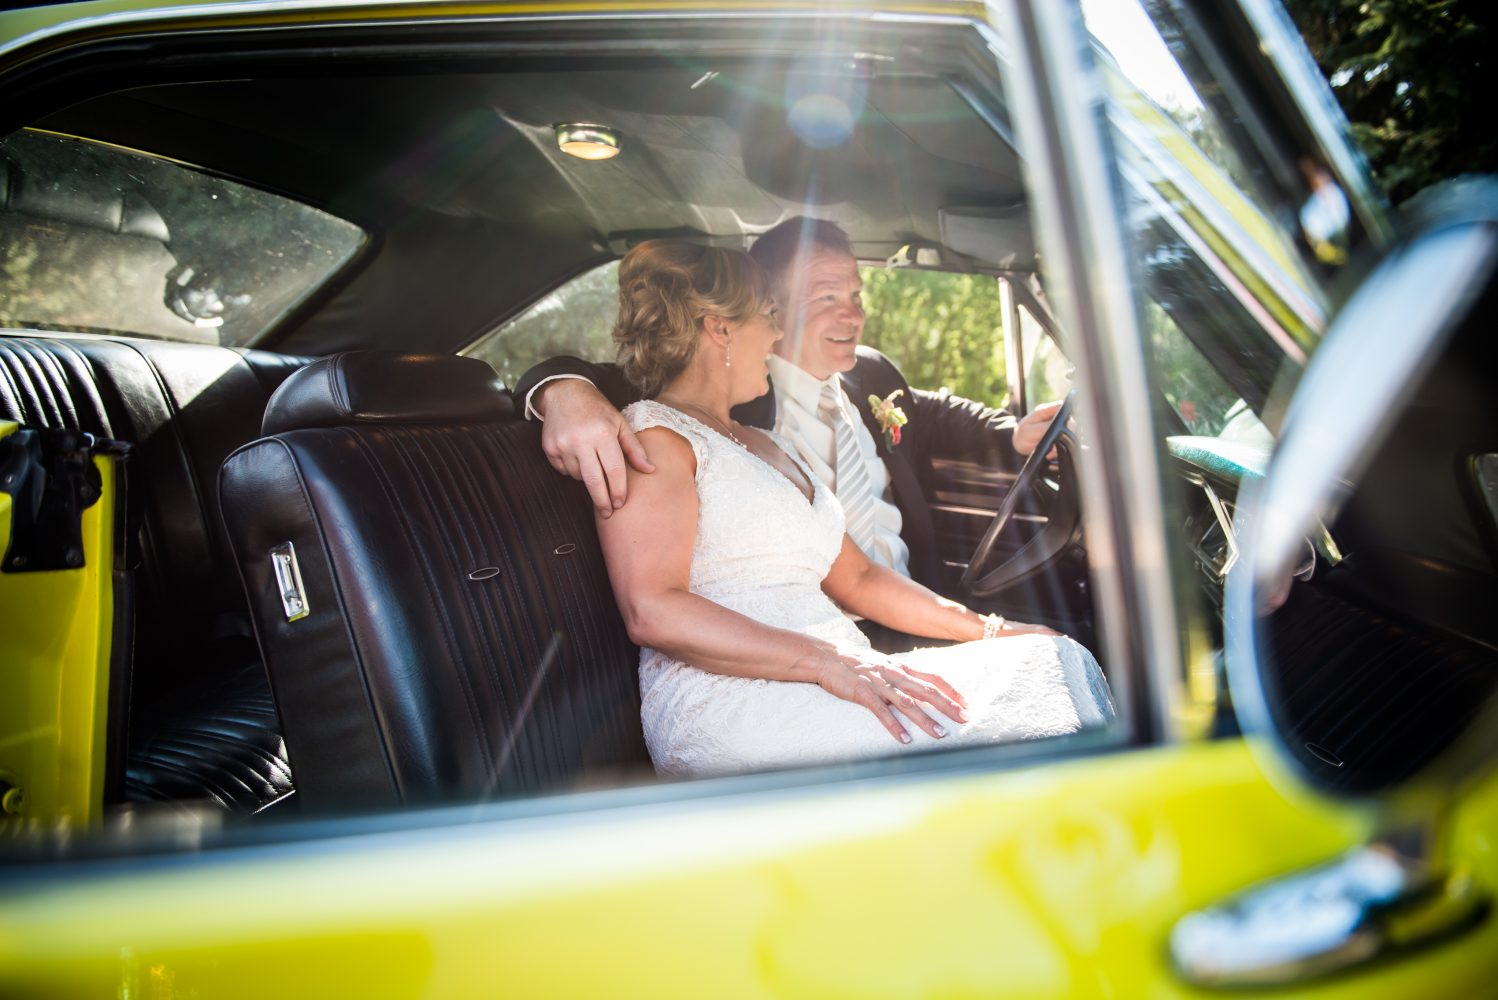 A vintage car gifted to her groom and some sun soaked images of the newly married couple in it | 3Haus Photographics